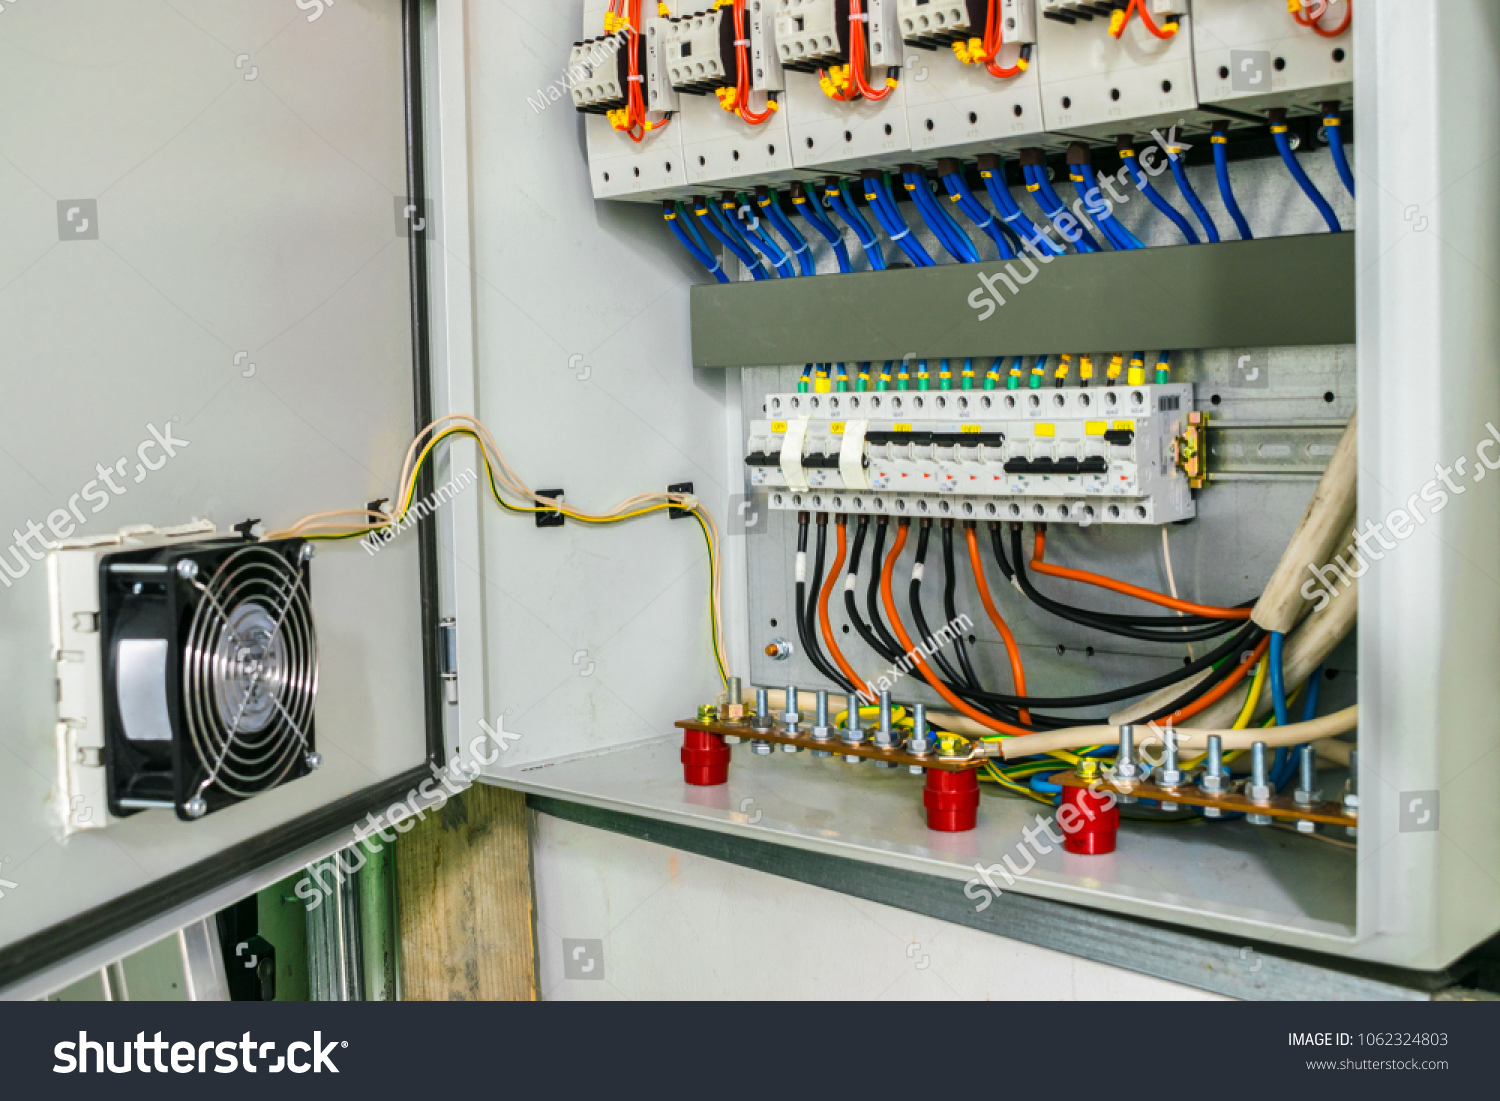 Electric power circuit breakers are in the fuse box. The wires with the  terminals are